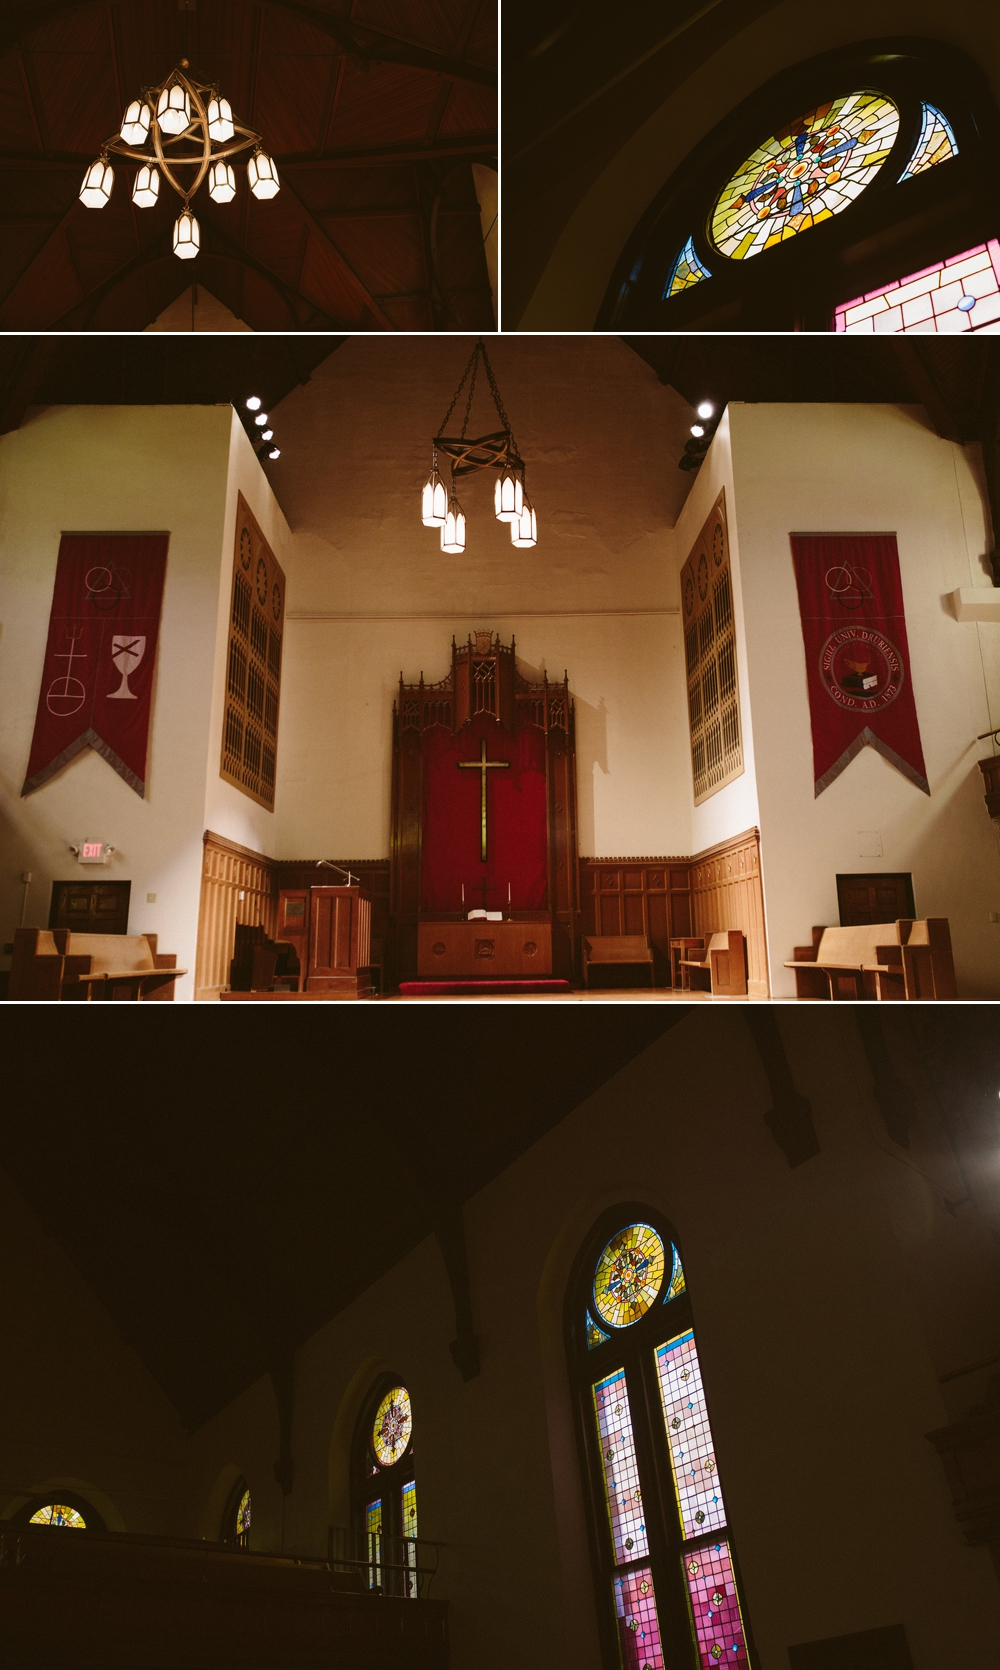 drury chapel interior - stained glass windows